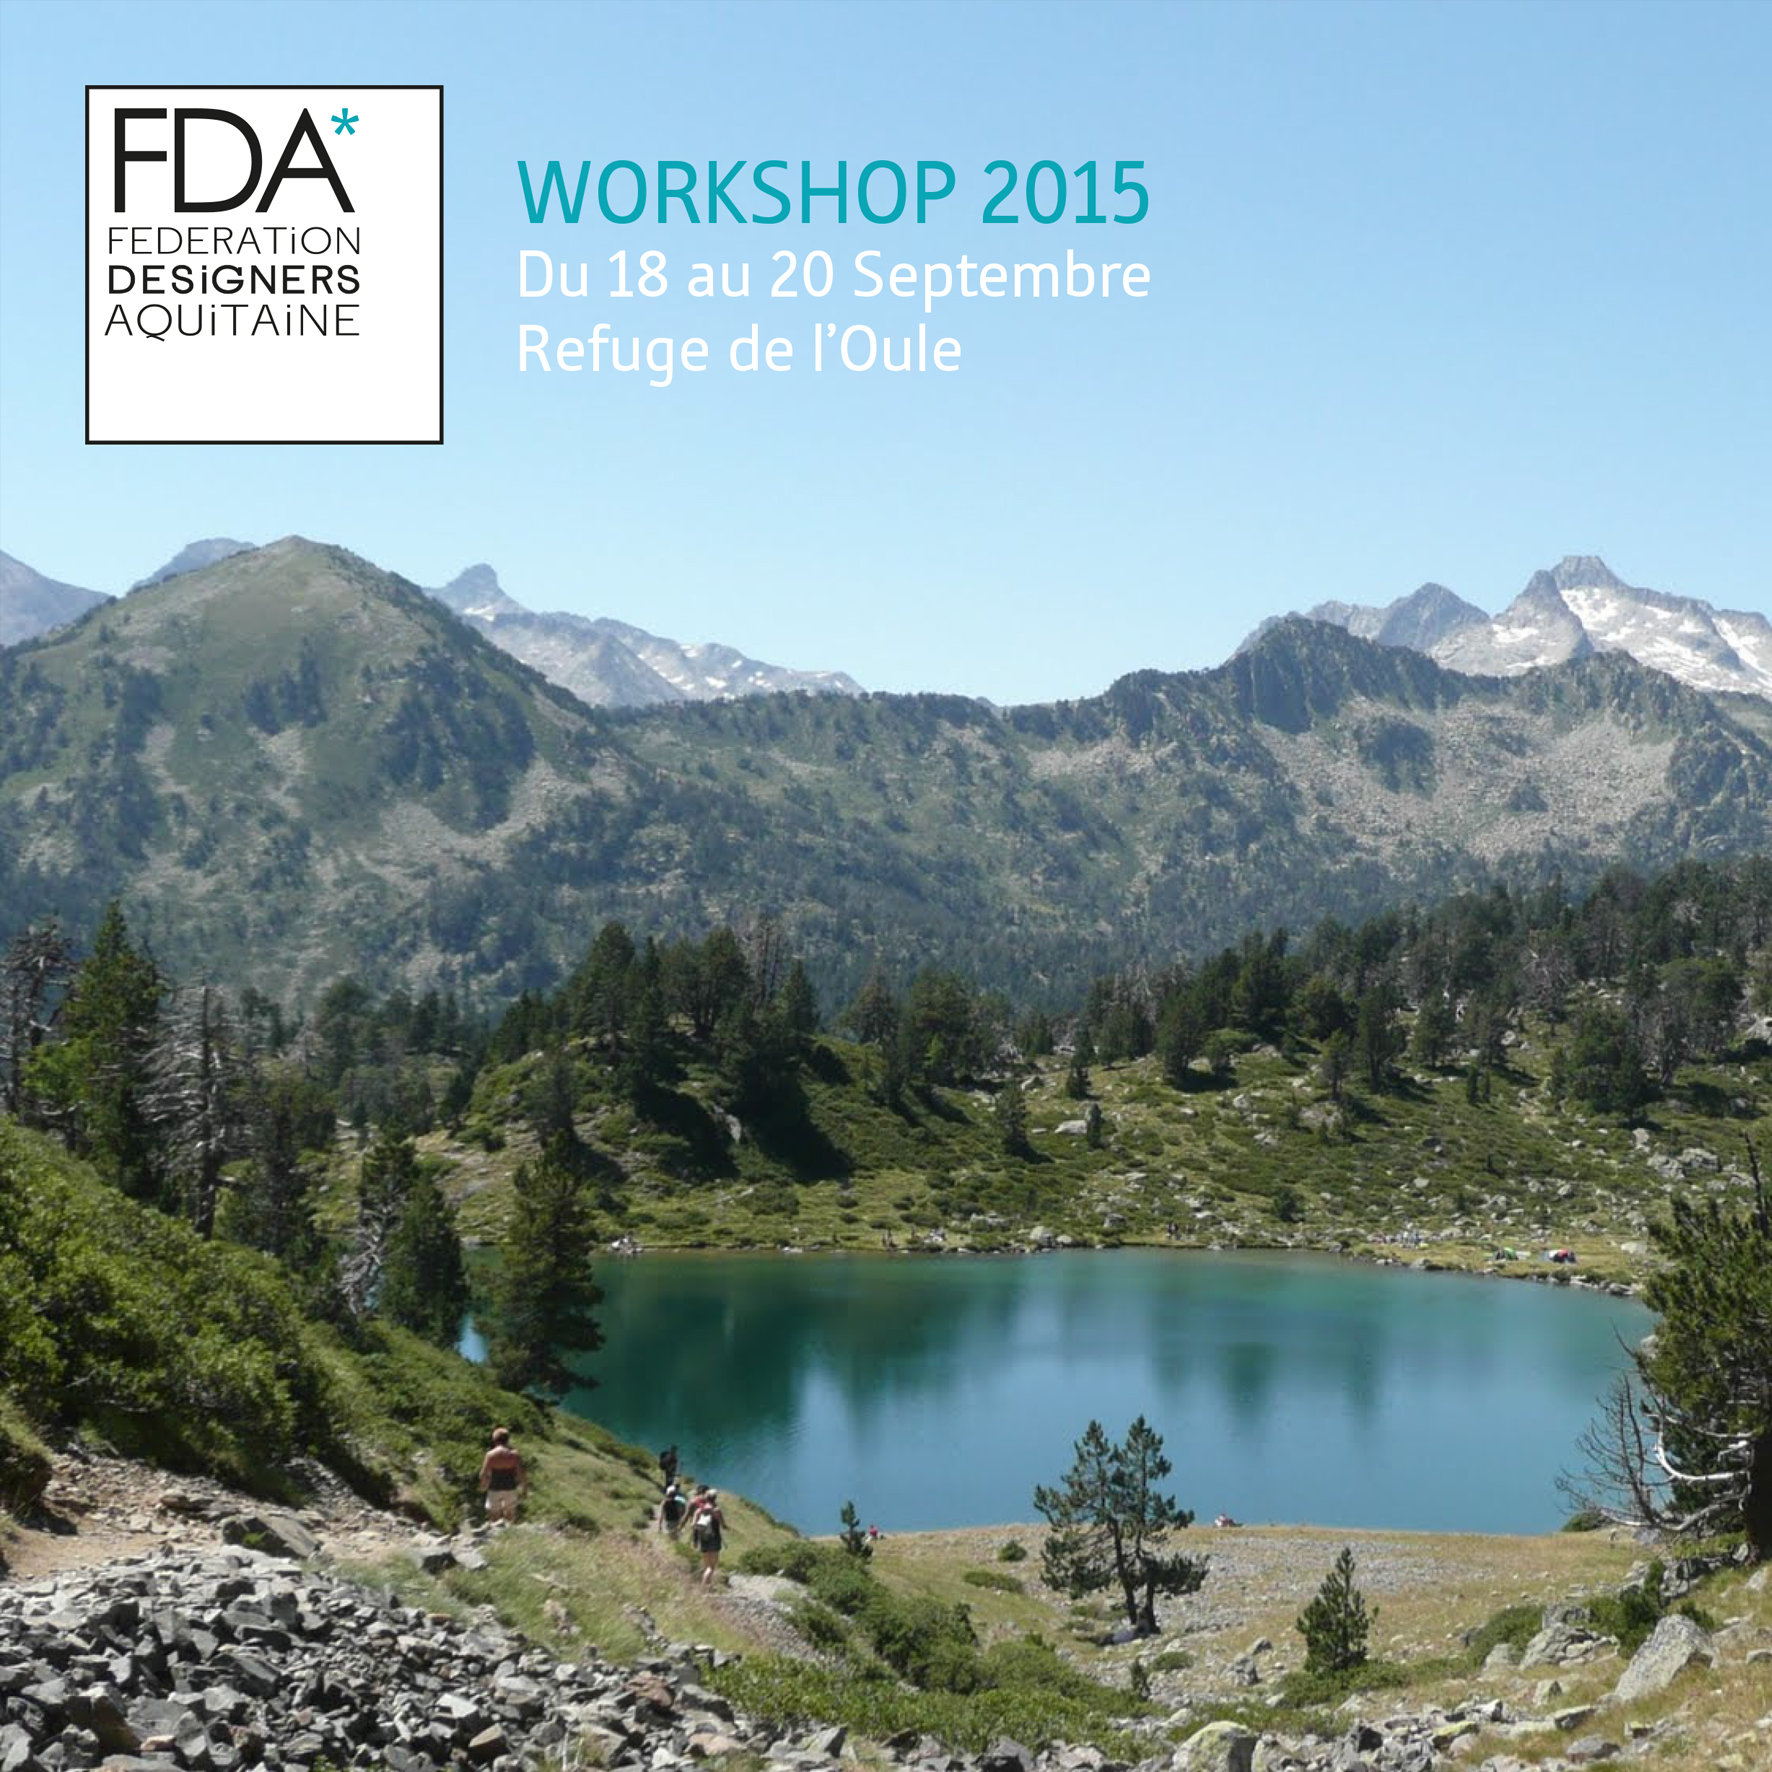 fda_workshop 2015